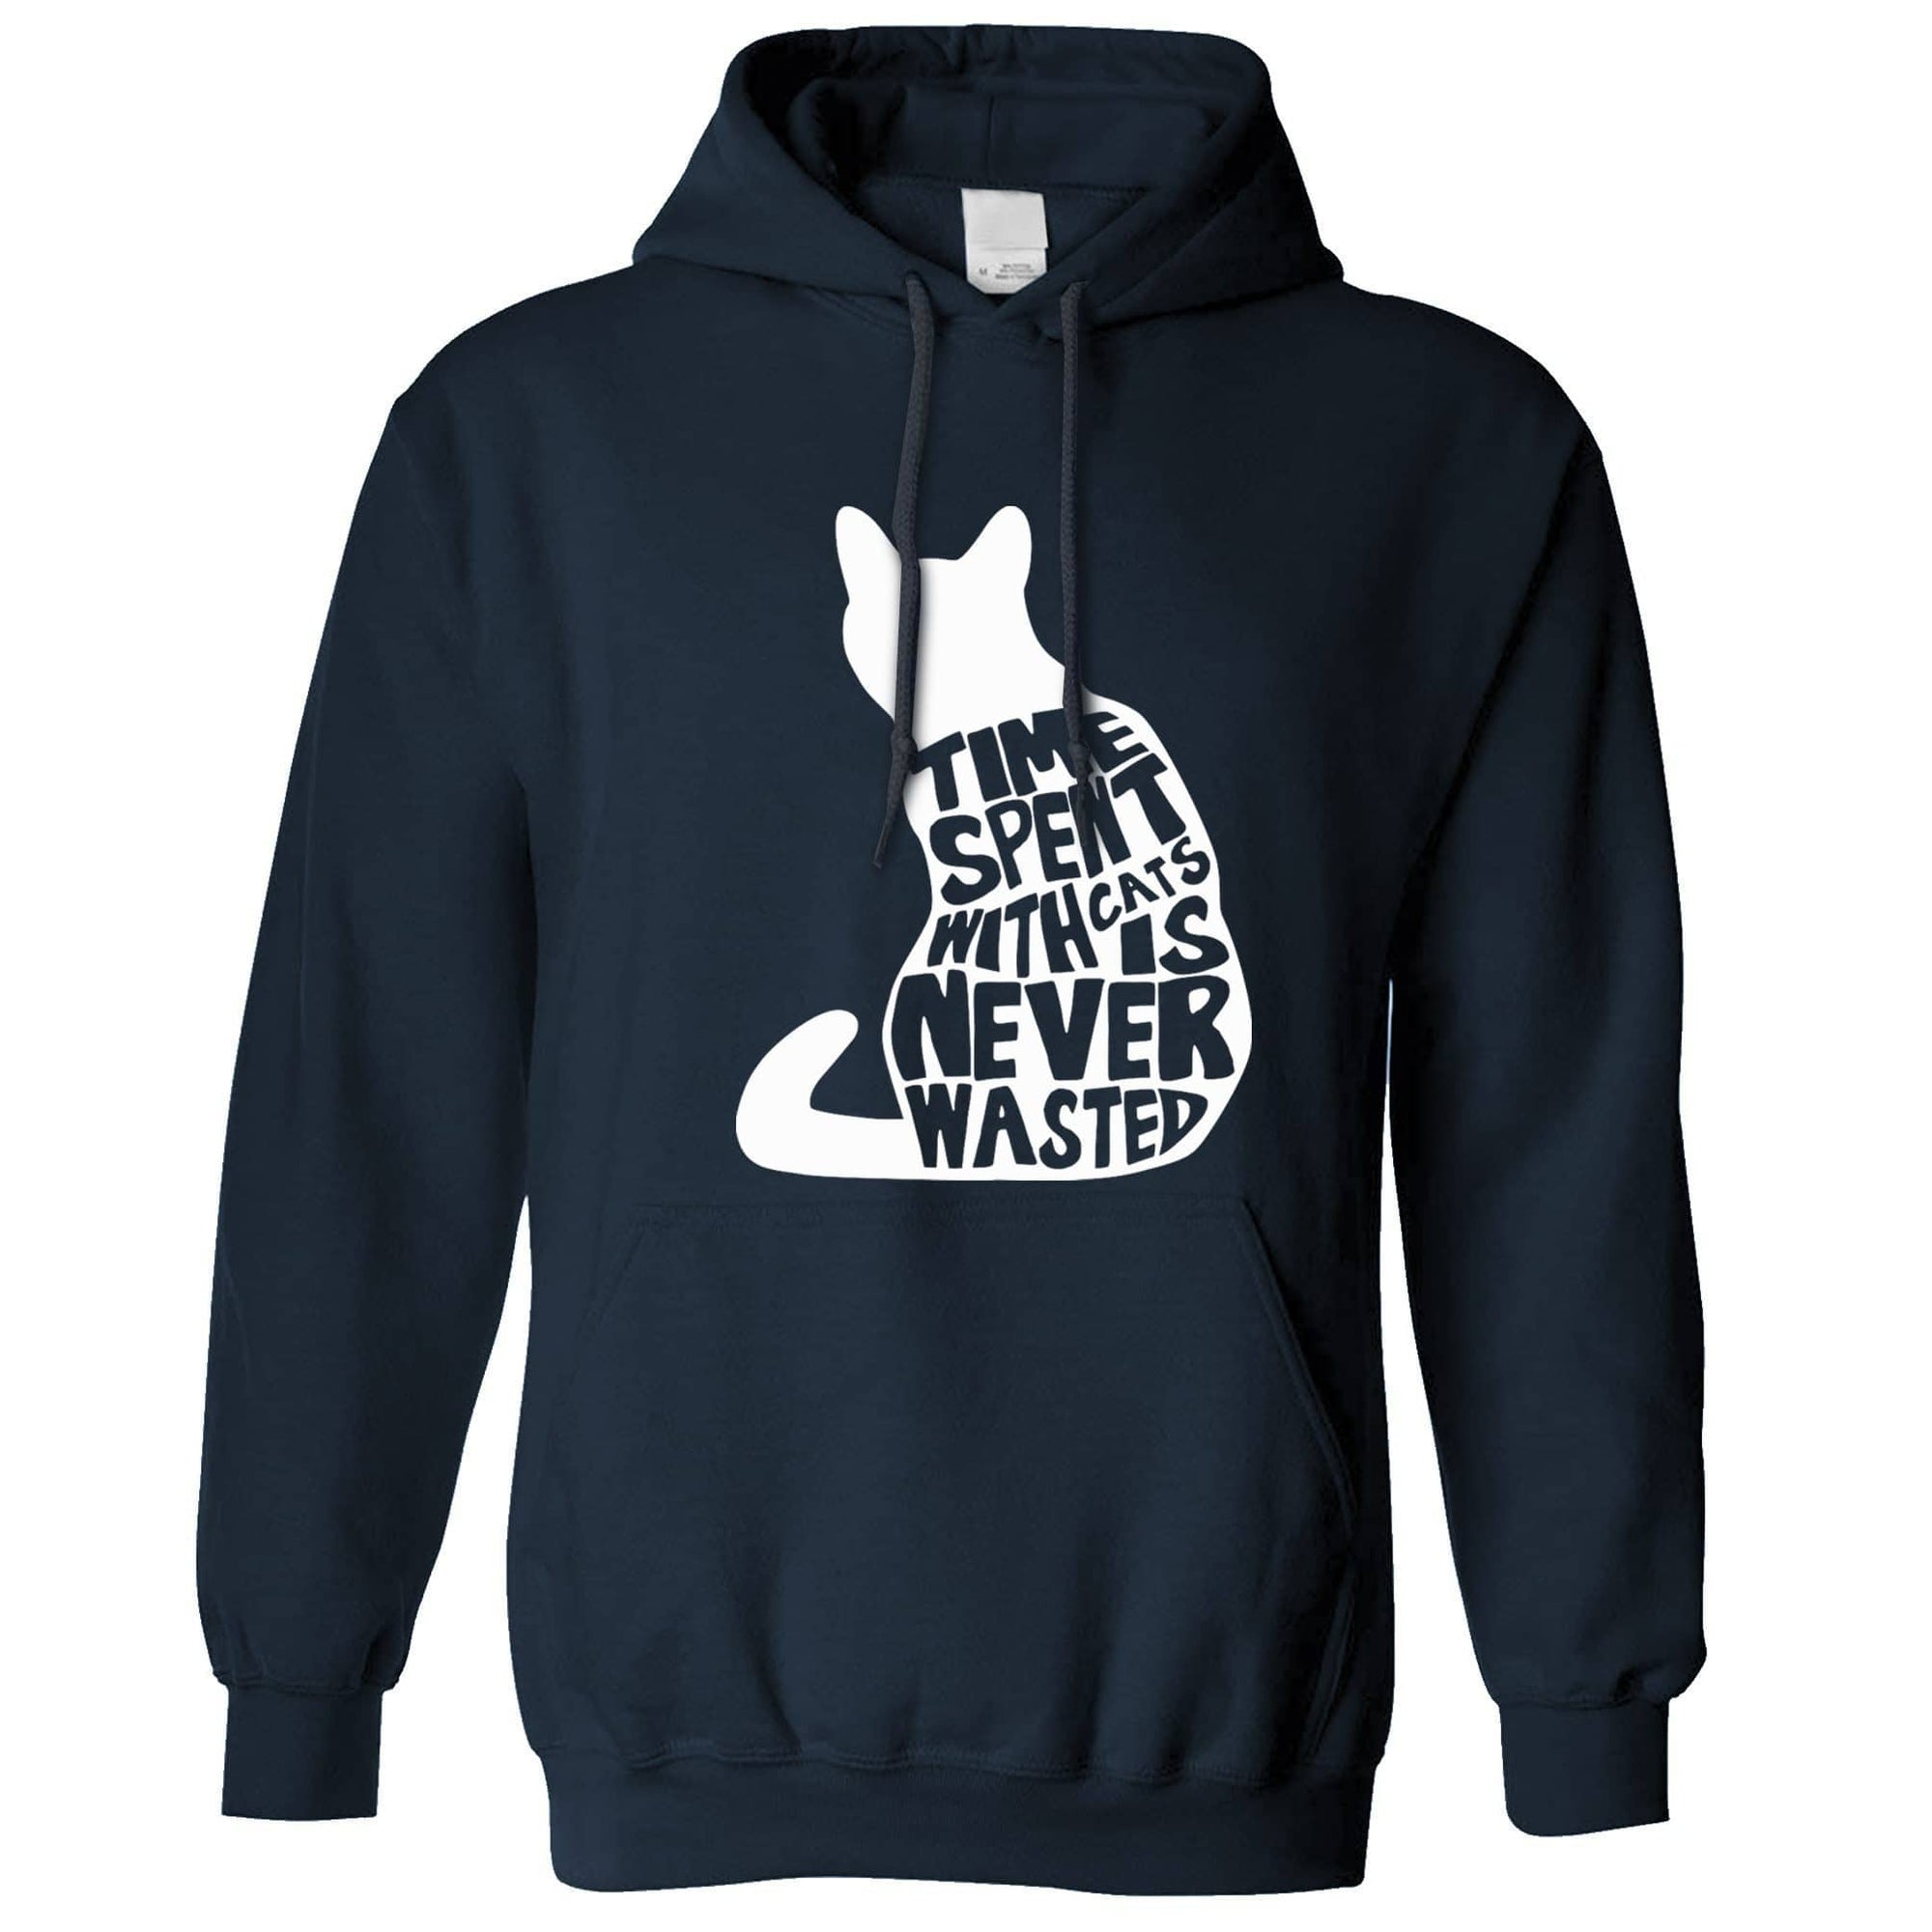 Cat Lover Hoodie Time Spent With Cats is Never Wasted Hooded Jumper